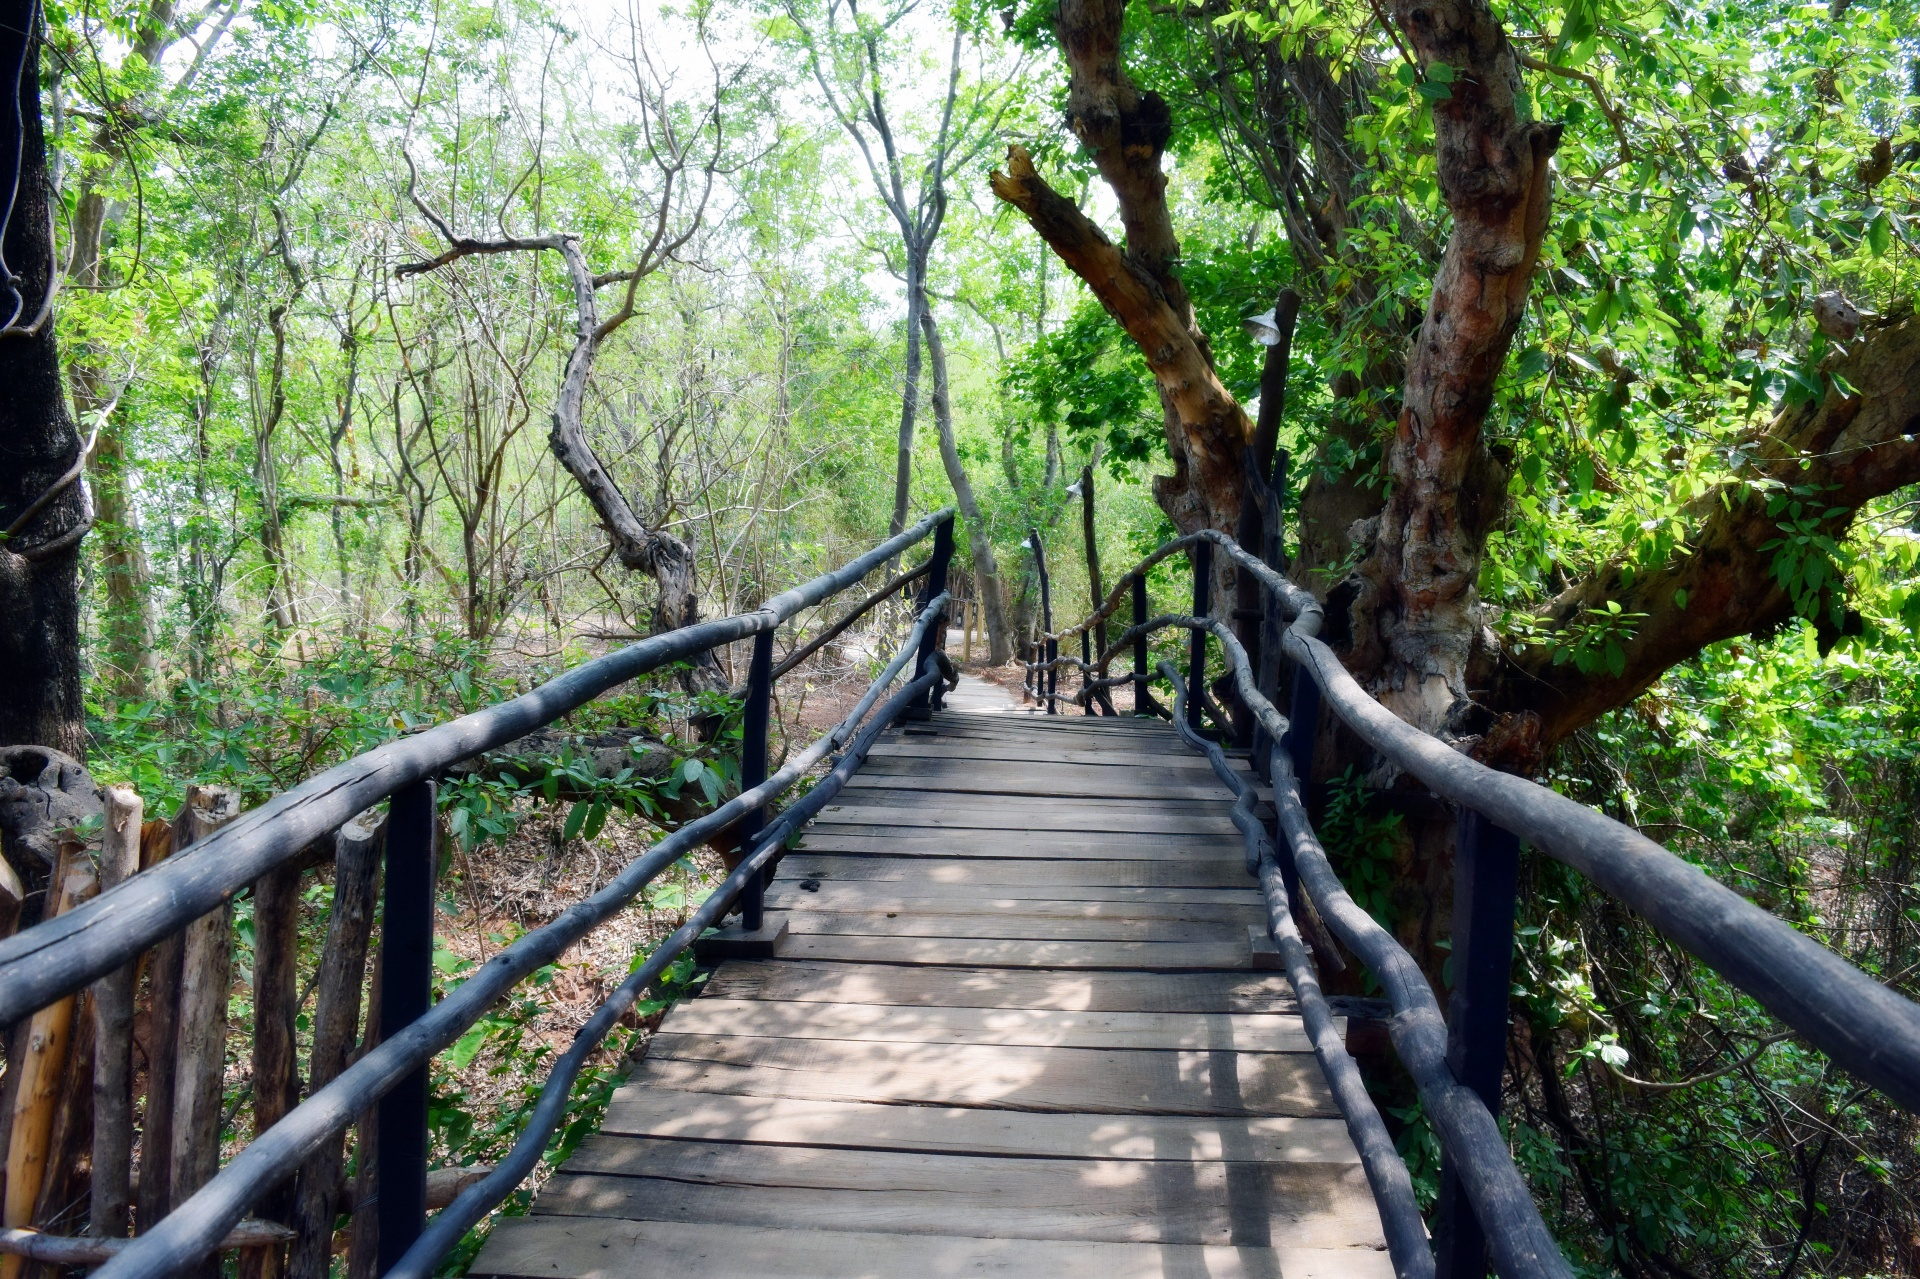 Bamboo bridge across Indian forest.